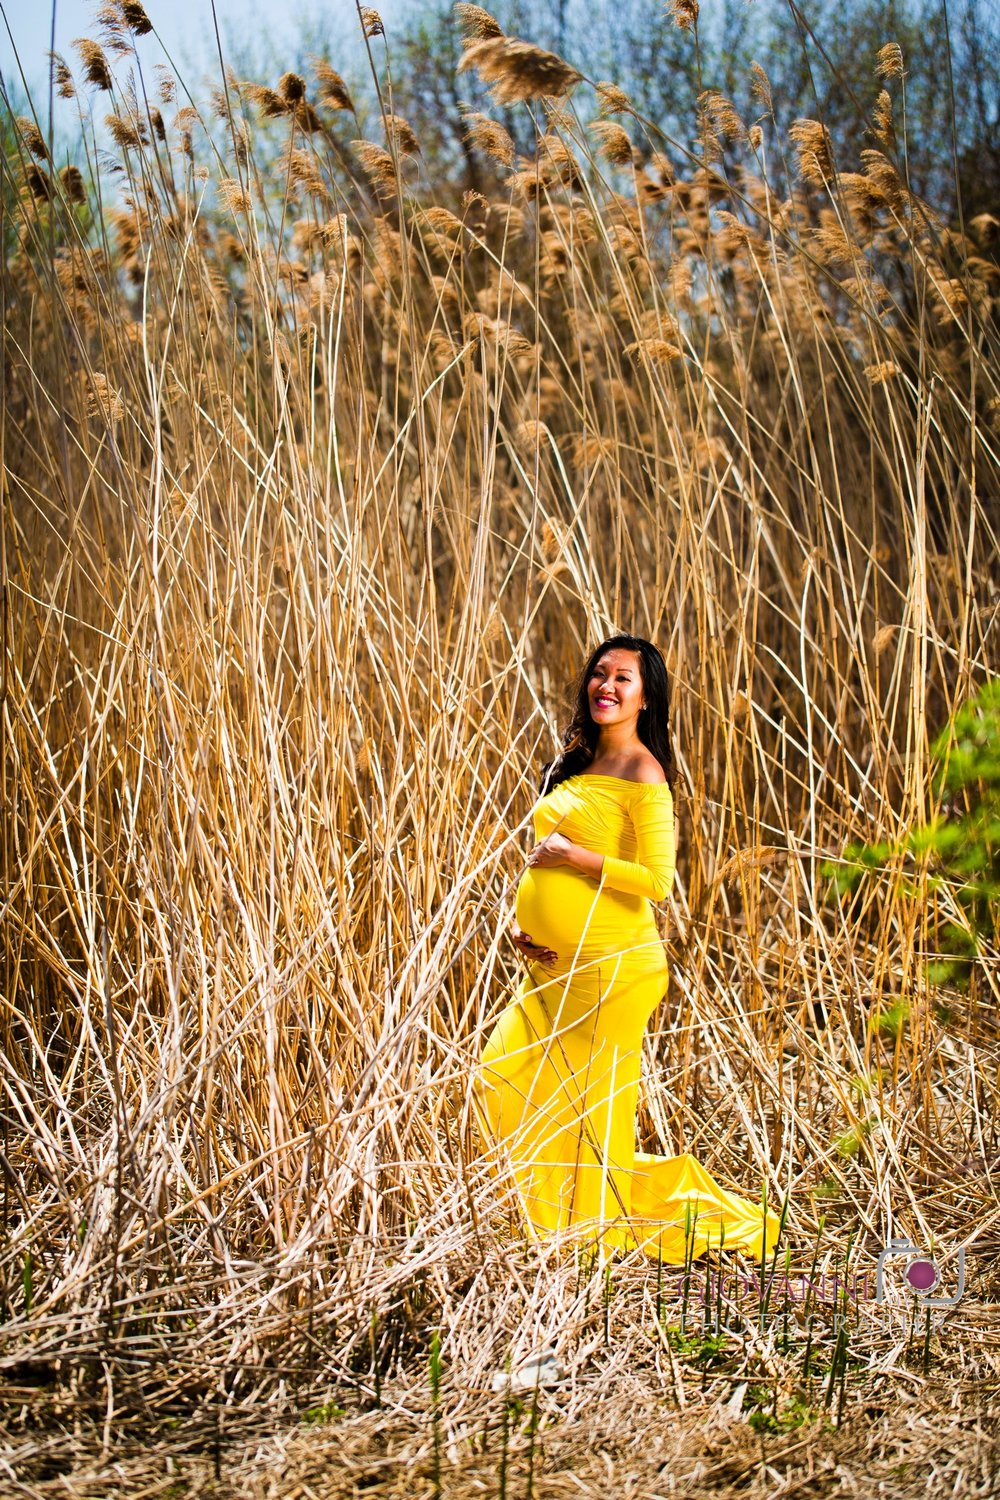 8C2A5894 Giovanni The Photographer Boston Maternity - Newborn Diana and Gee WM35 - Webb State Park Weymouth.jpg